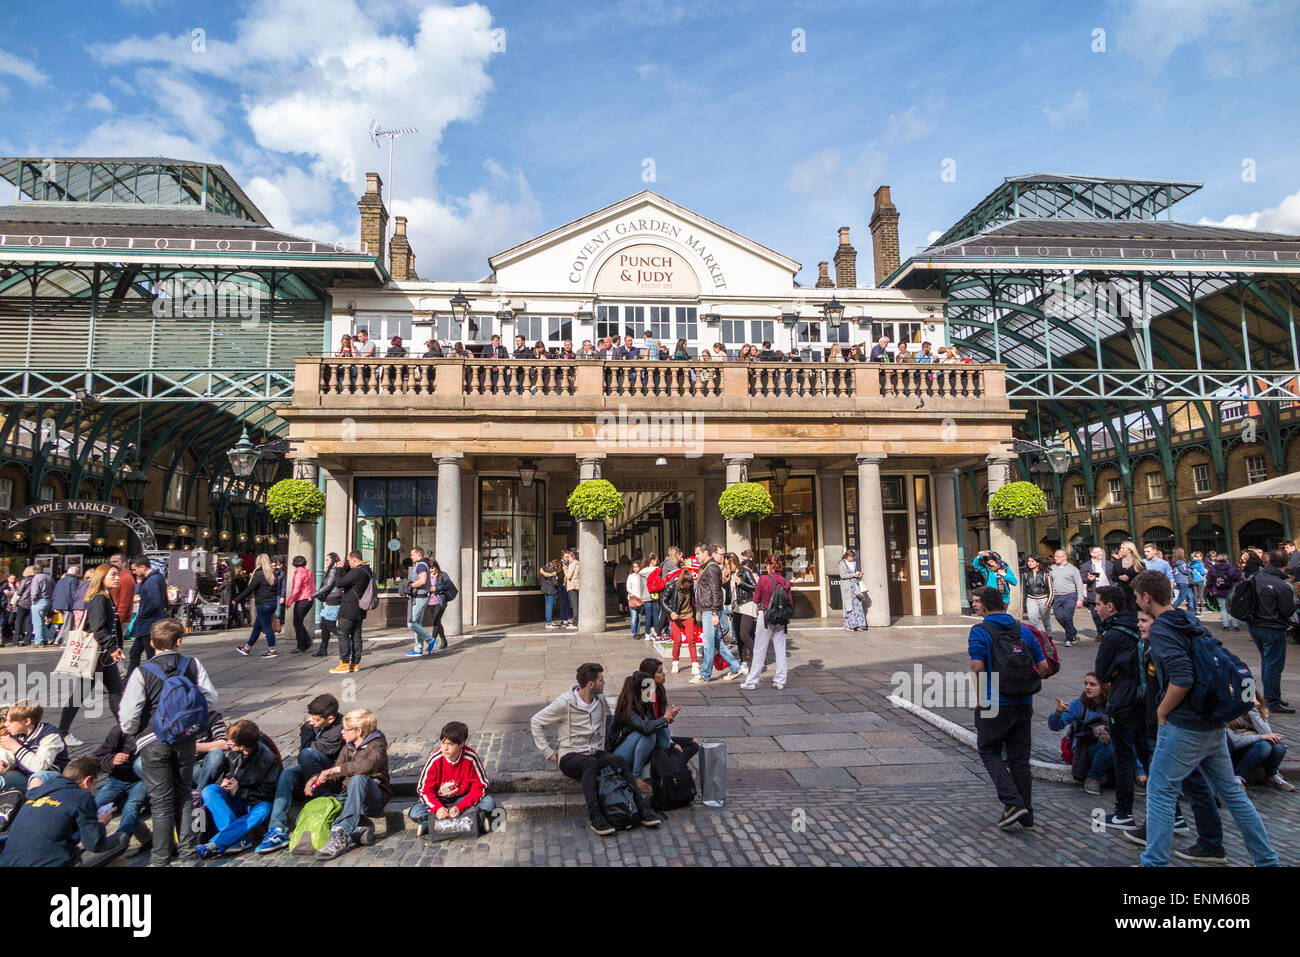 Personable Punch  Judy Balcony Bar In Covent Garden Market In The West End  With Lovable Punch  Judy Balcony Bar In Covent Garden Market In The West End Of London With Nice Garden Plant Sales Also Garden Supply Denver In Addition Iron Garden Gates For Sale And In The Night Garden Bean Bag As Well As Next Garden Accessories Additionally Designer Garden Rooms From Alamycom With   Lovable Punch  Judy Balcony Bar In Covent Garden Market In The West End  With Nice Punch  Judy Balcony Bar In Covent Garden Market In The West End Of London And Personable Garden Plant Sales Also Garden Supply Denver In Addition Iron Garden Gates For Sale From Alamycom